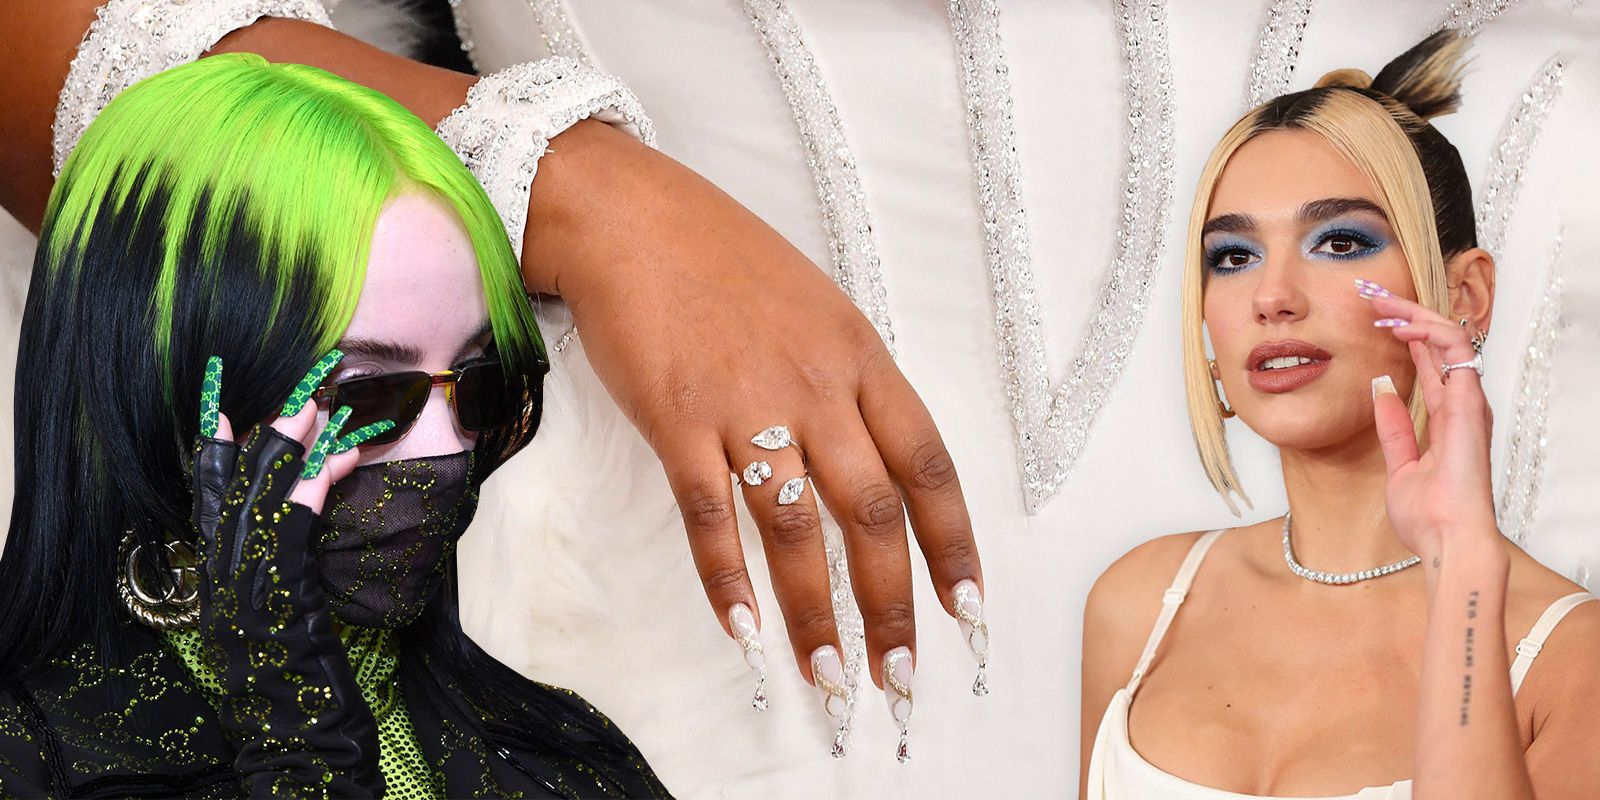 The Best Grammys Nails Included Logos, Crystals, And A Kobe Bryant Tribute